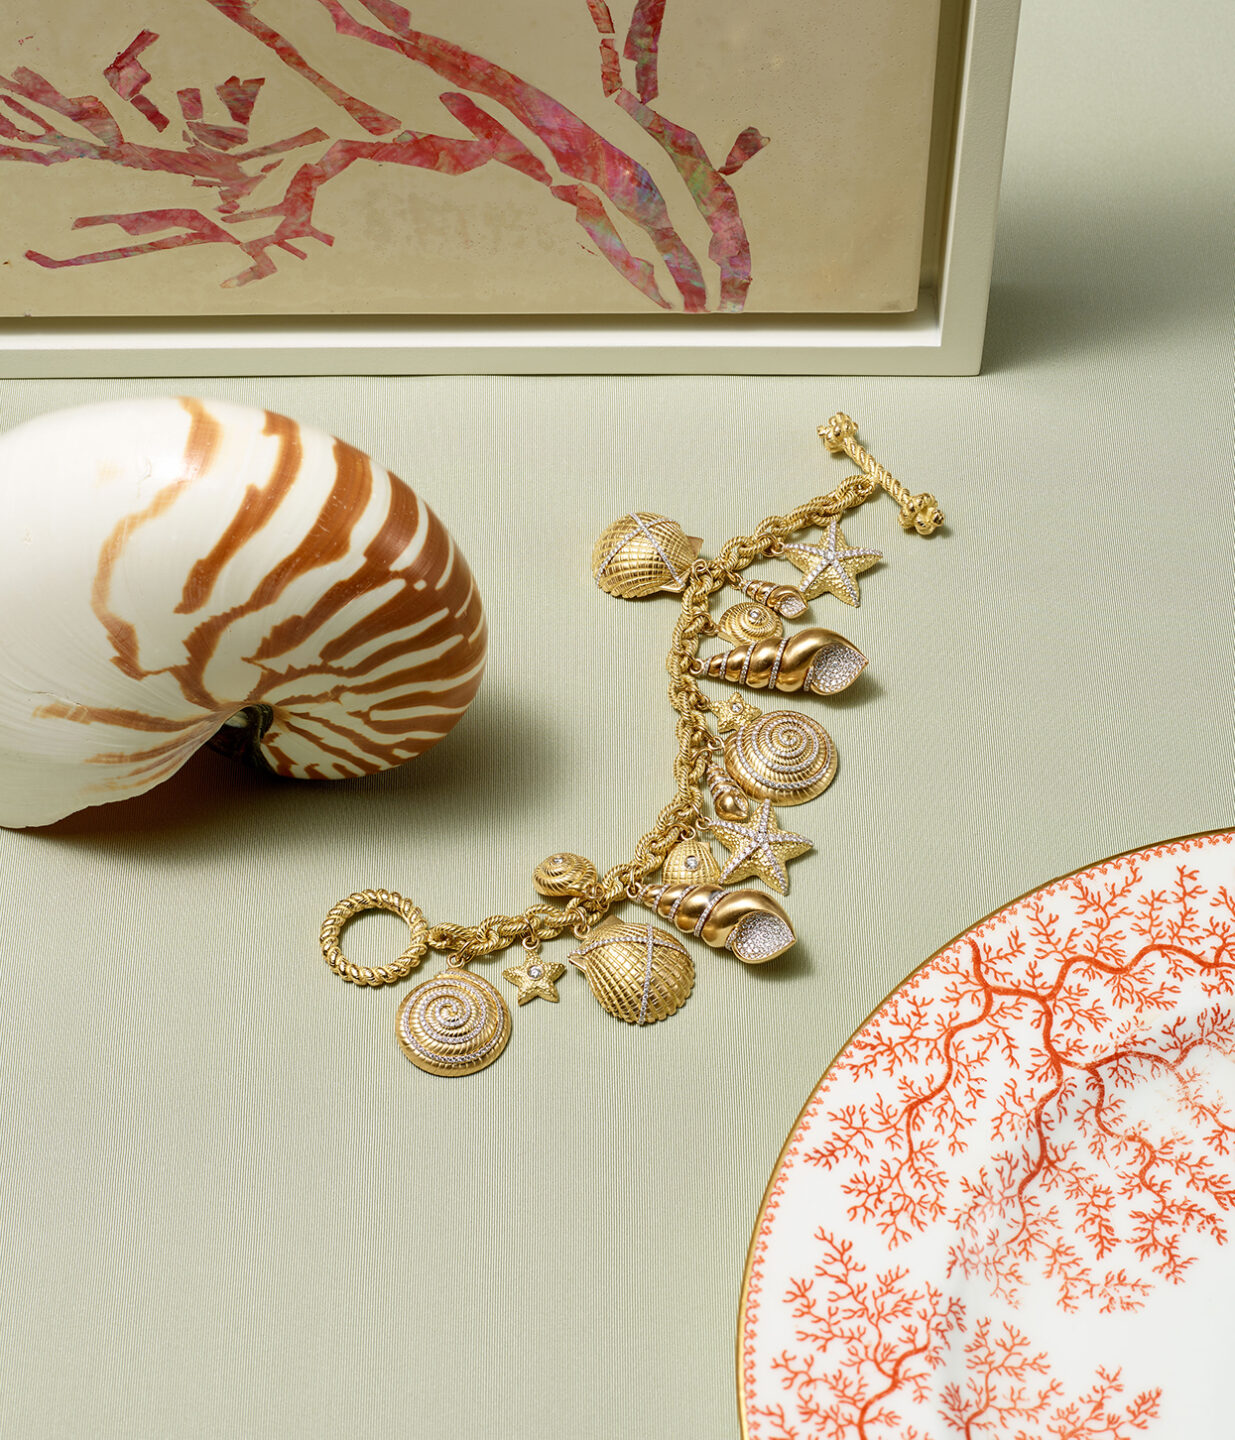 mish_jewelry_product_Cabana-Gld-Chrm-BR-Editorial-1